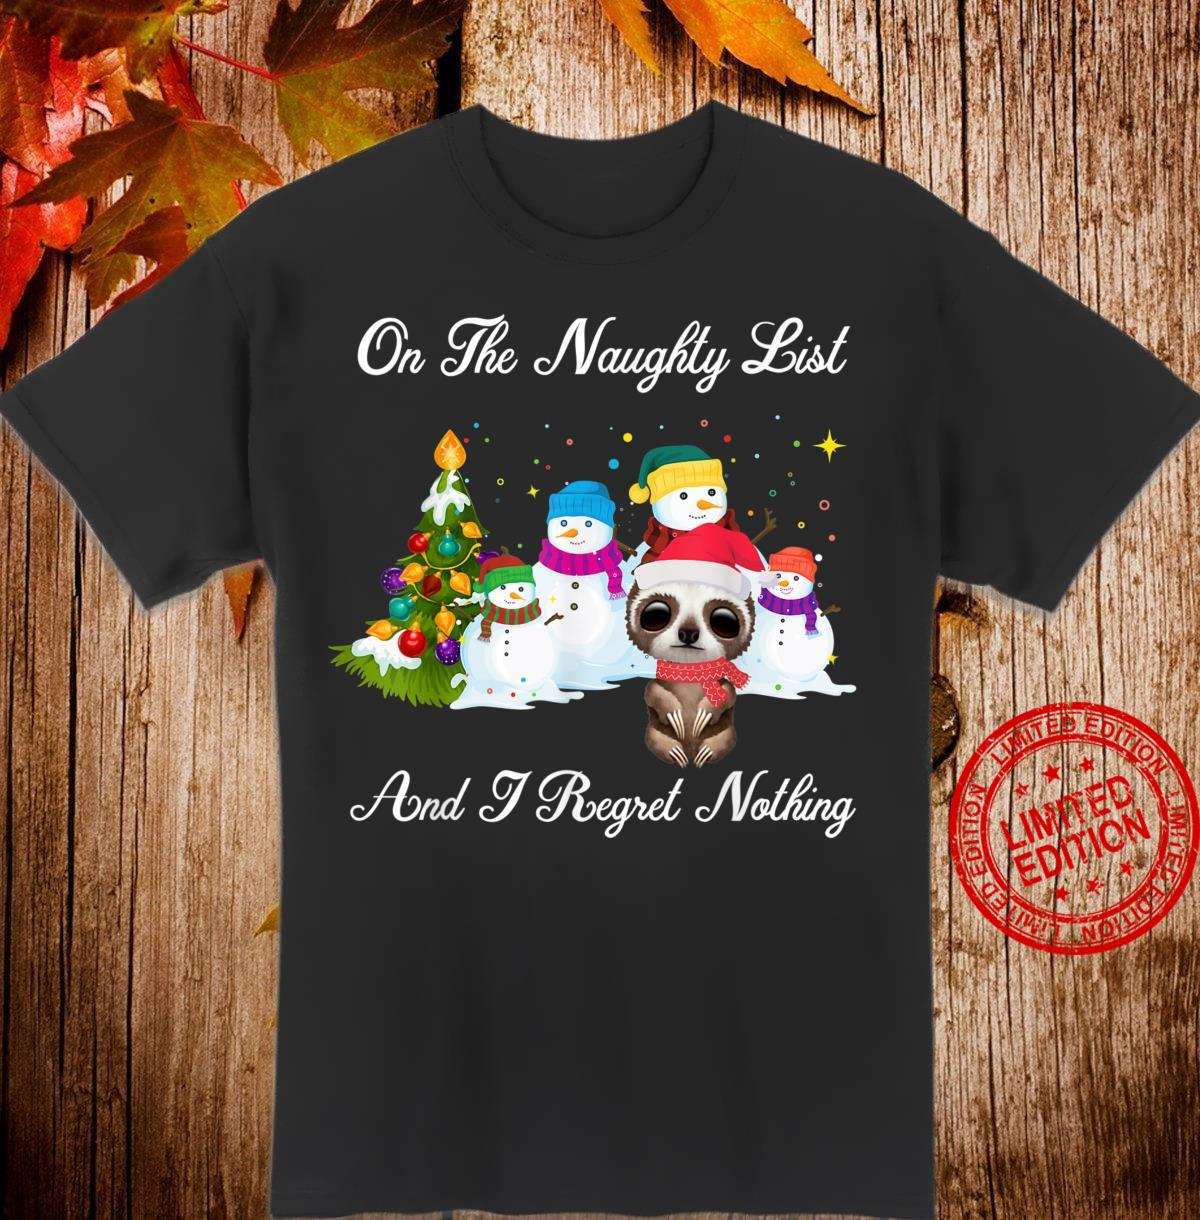 On The Naughty List And I Regret Nothing Sloth Christmas Shirt